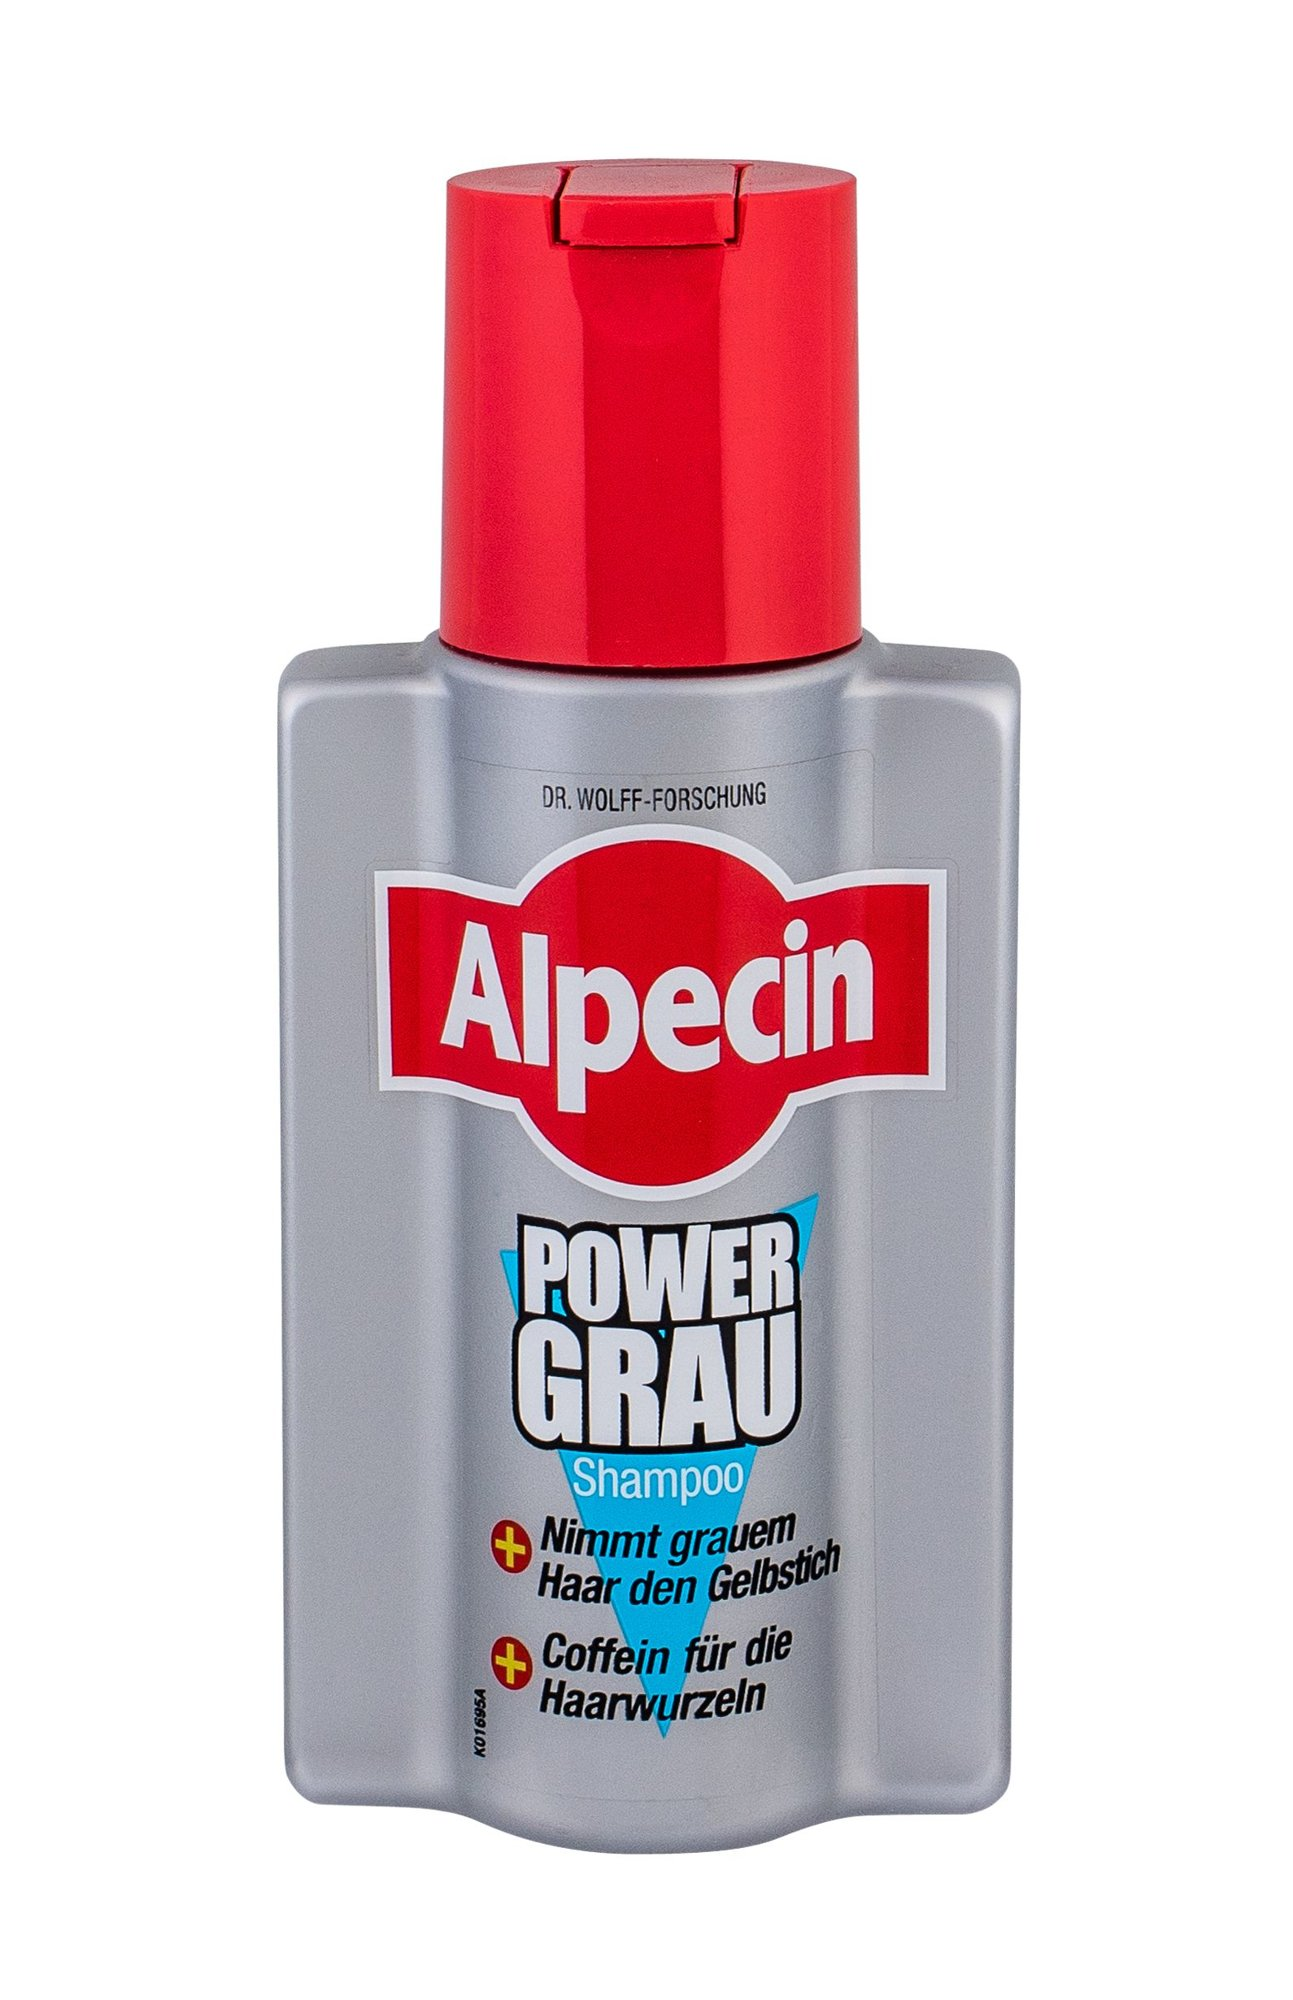 Alpecin PowerGrey Cosmetic 200ml